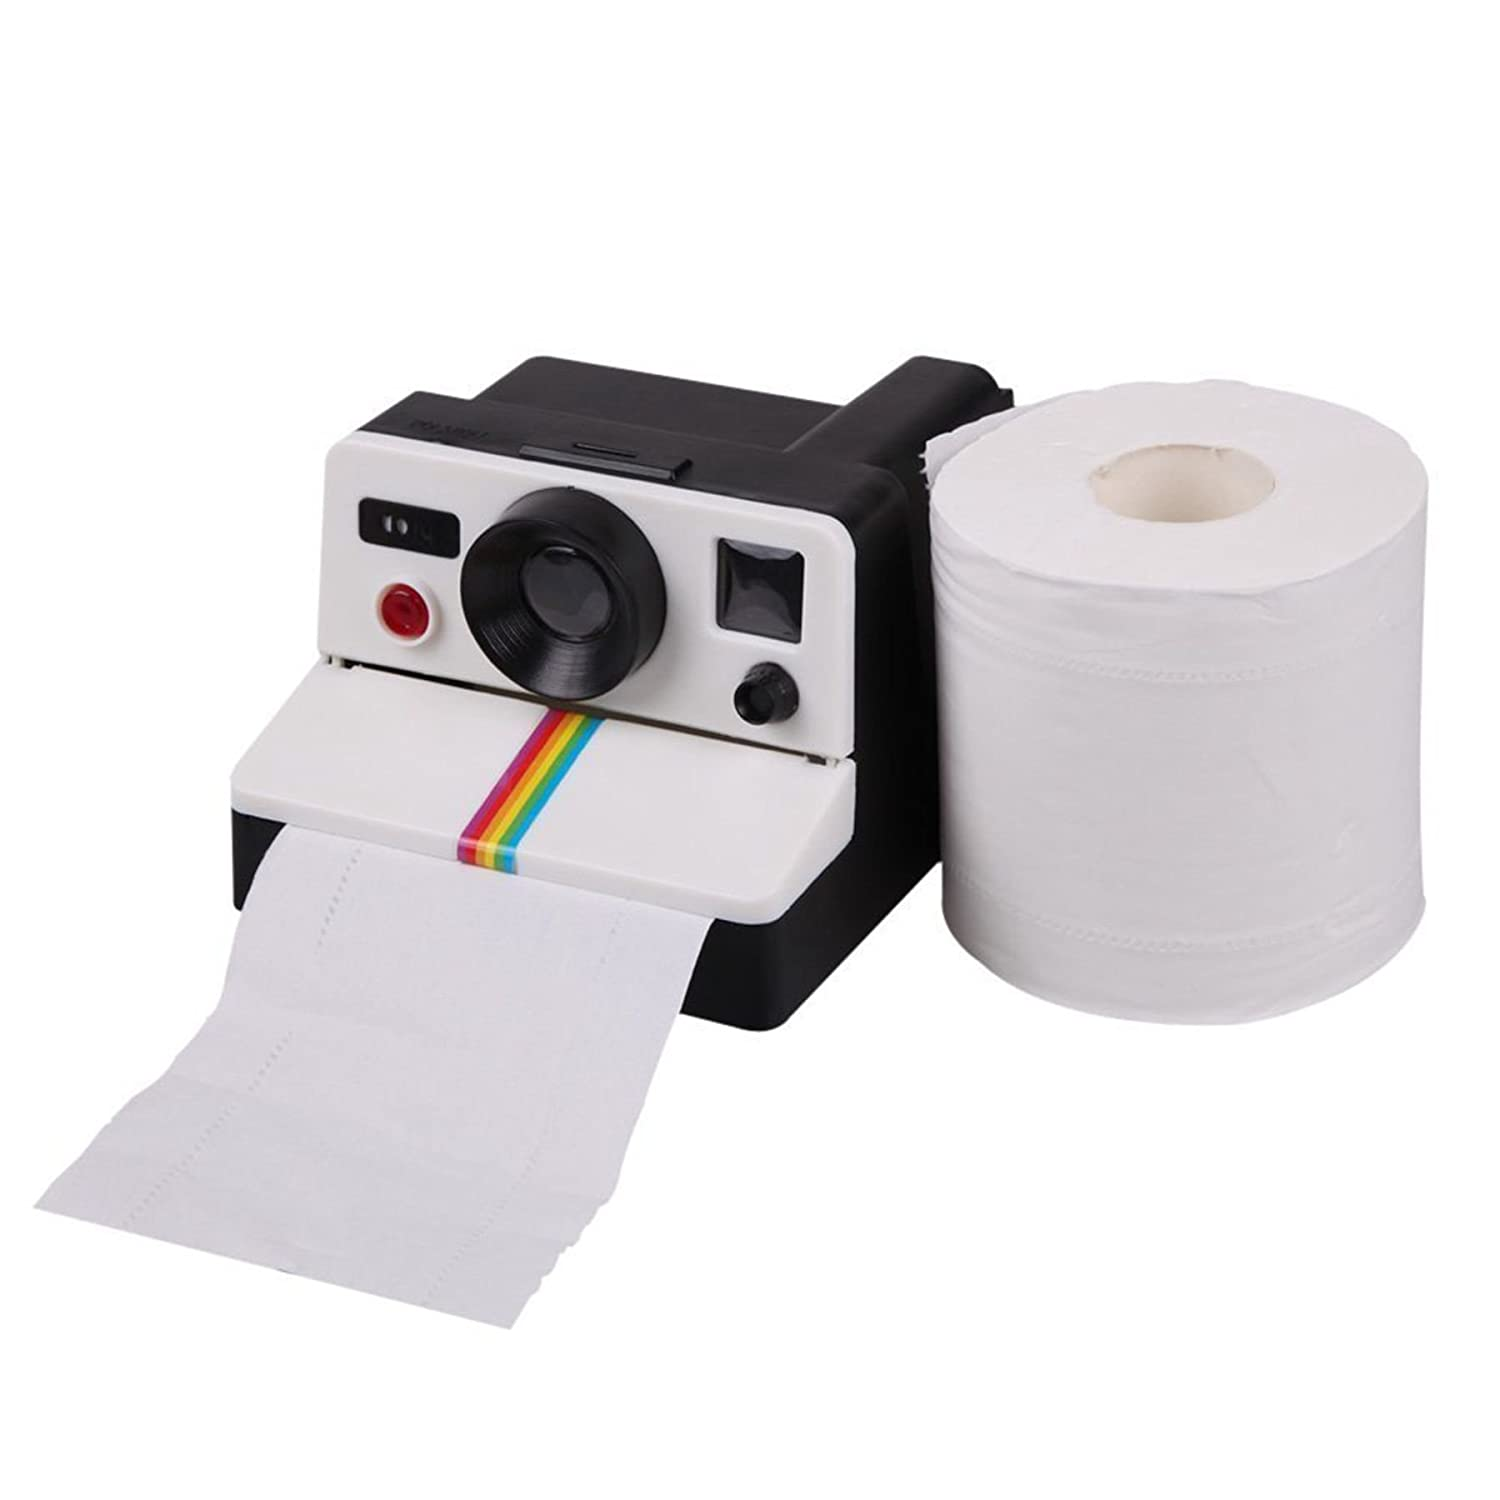 Graybird Polaroid Camera Style Toilet Bathroom Lavatory Washroom Paper Roll Holder